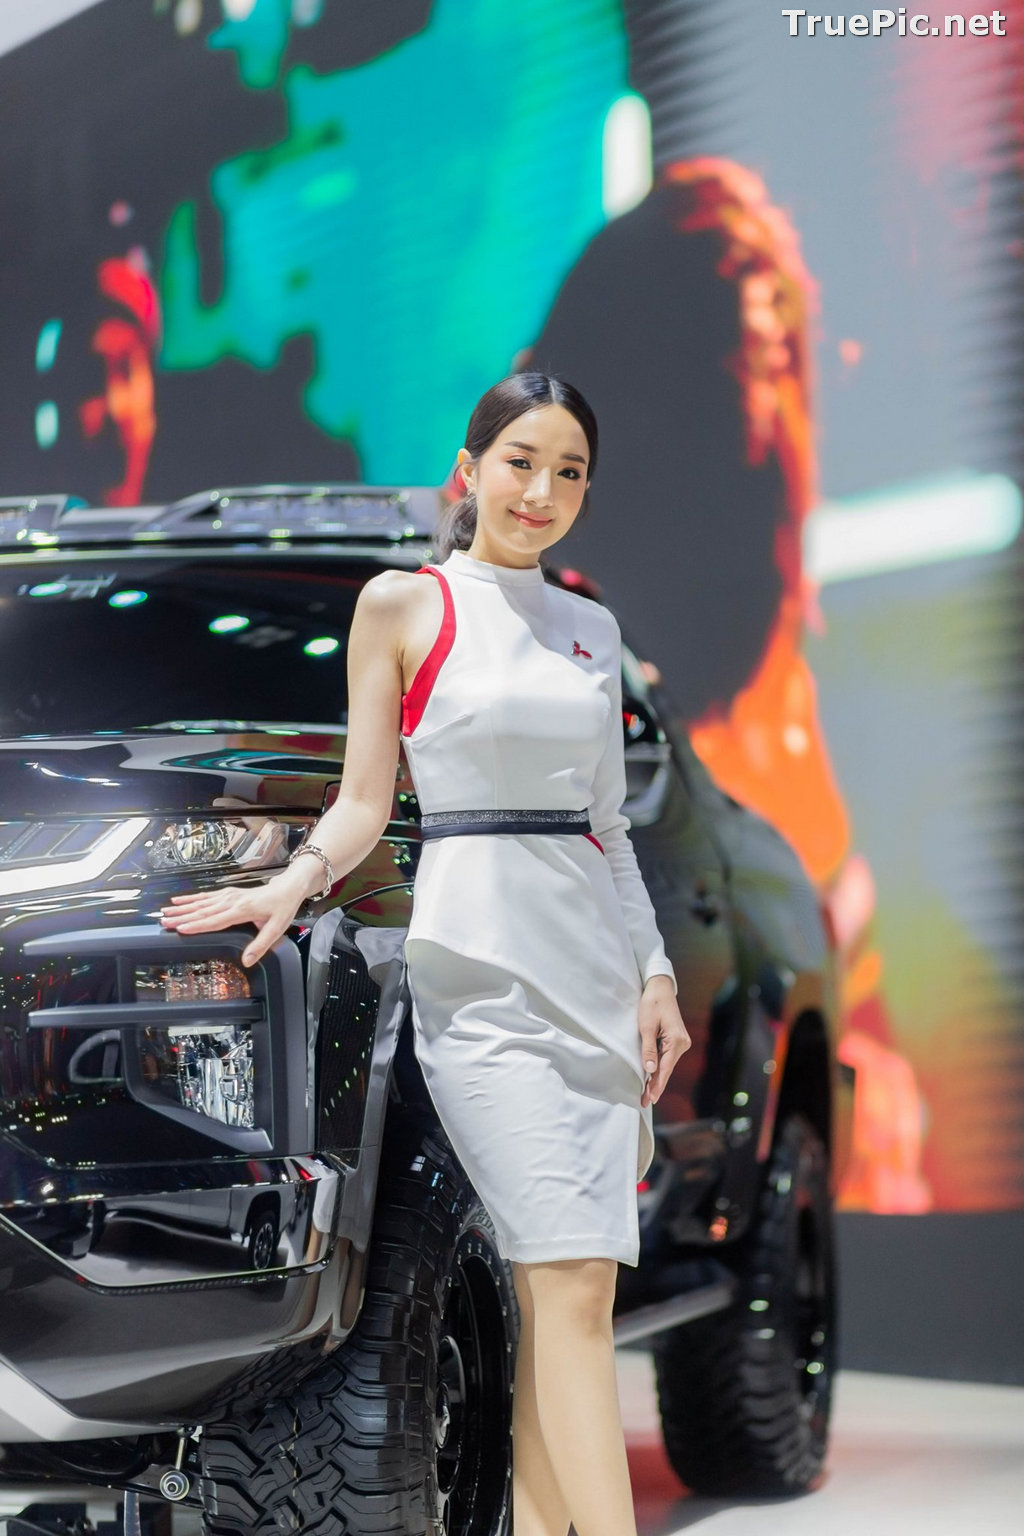 Image Thailand Racing Model at BIG Motor Sale 2019 - TruePic.net - Picture-6